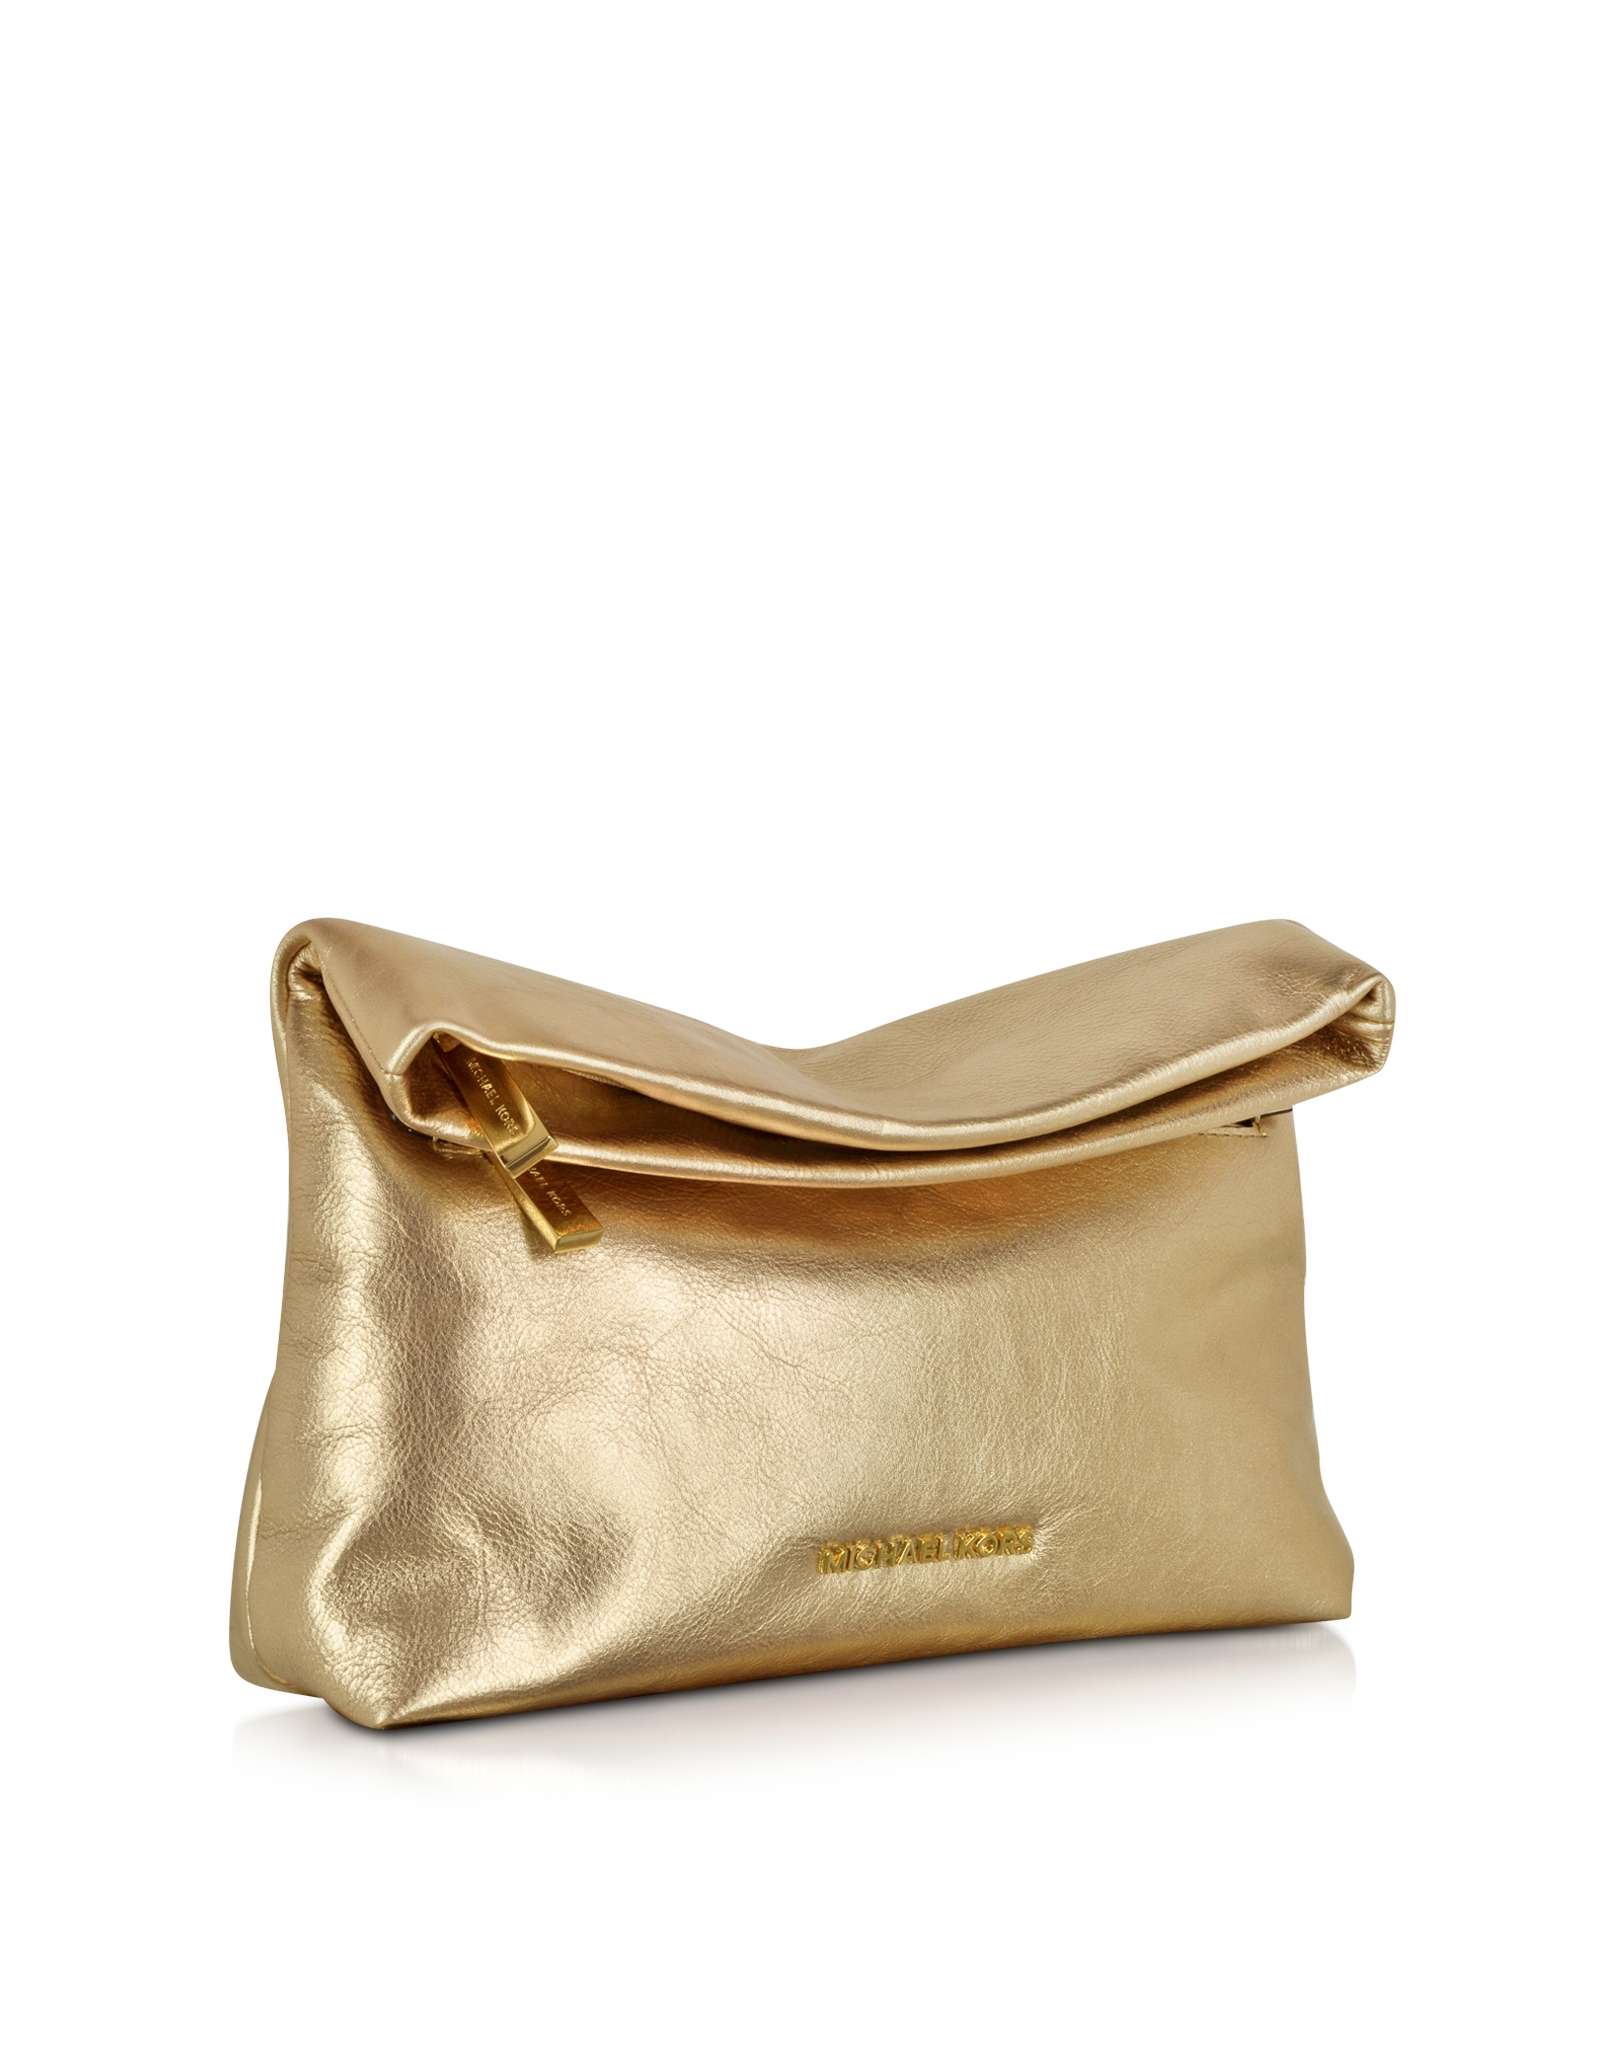 michael kors daria pale gold leather fold over clutch in metallic lyst. Black Bedroom Furniture Sets. Home Design Ideas